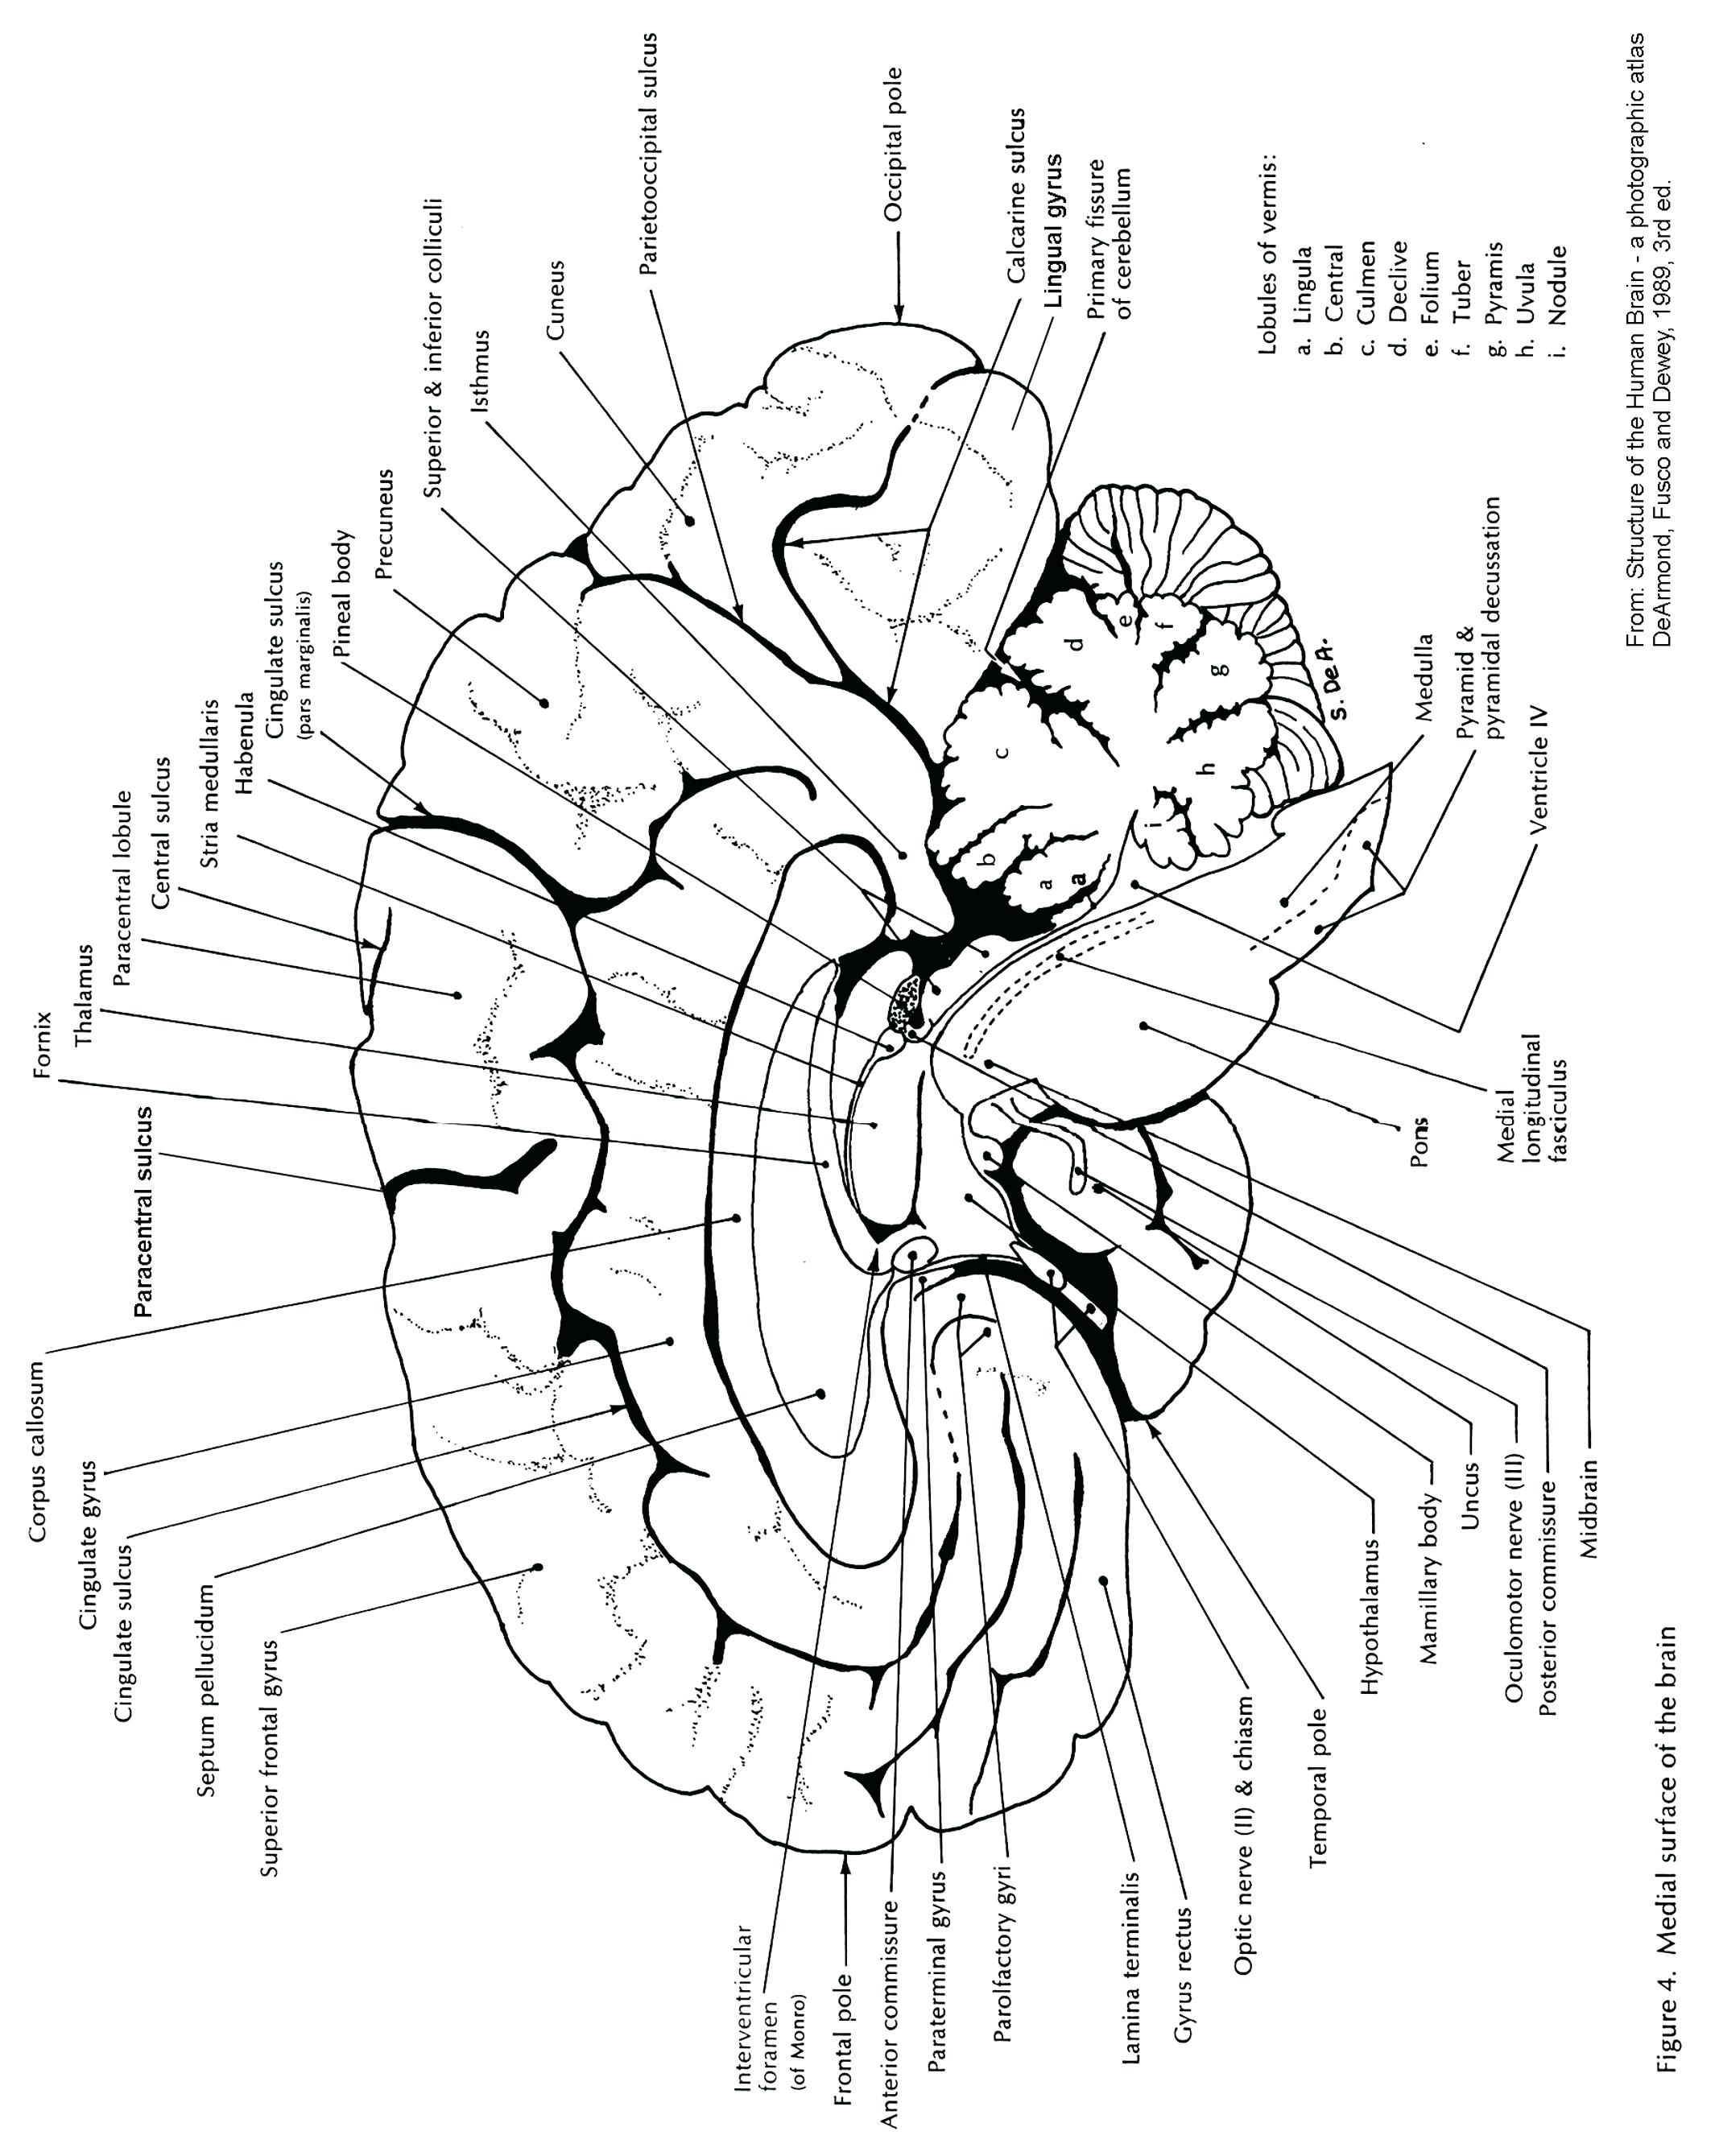 Brain and its parts drawing at getdrawings free for personal 2130x2678 diagram brain diagram sagittal view ccuart Image collections